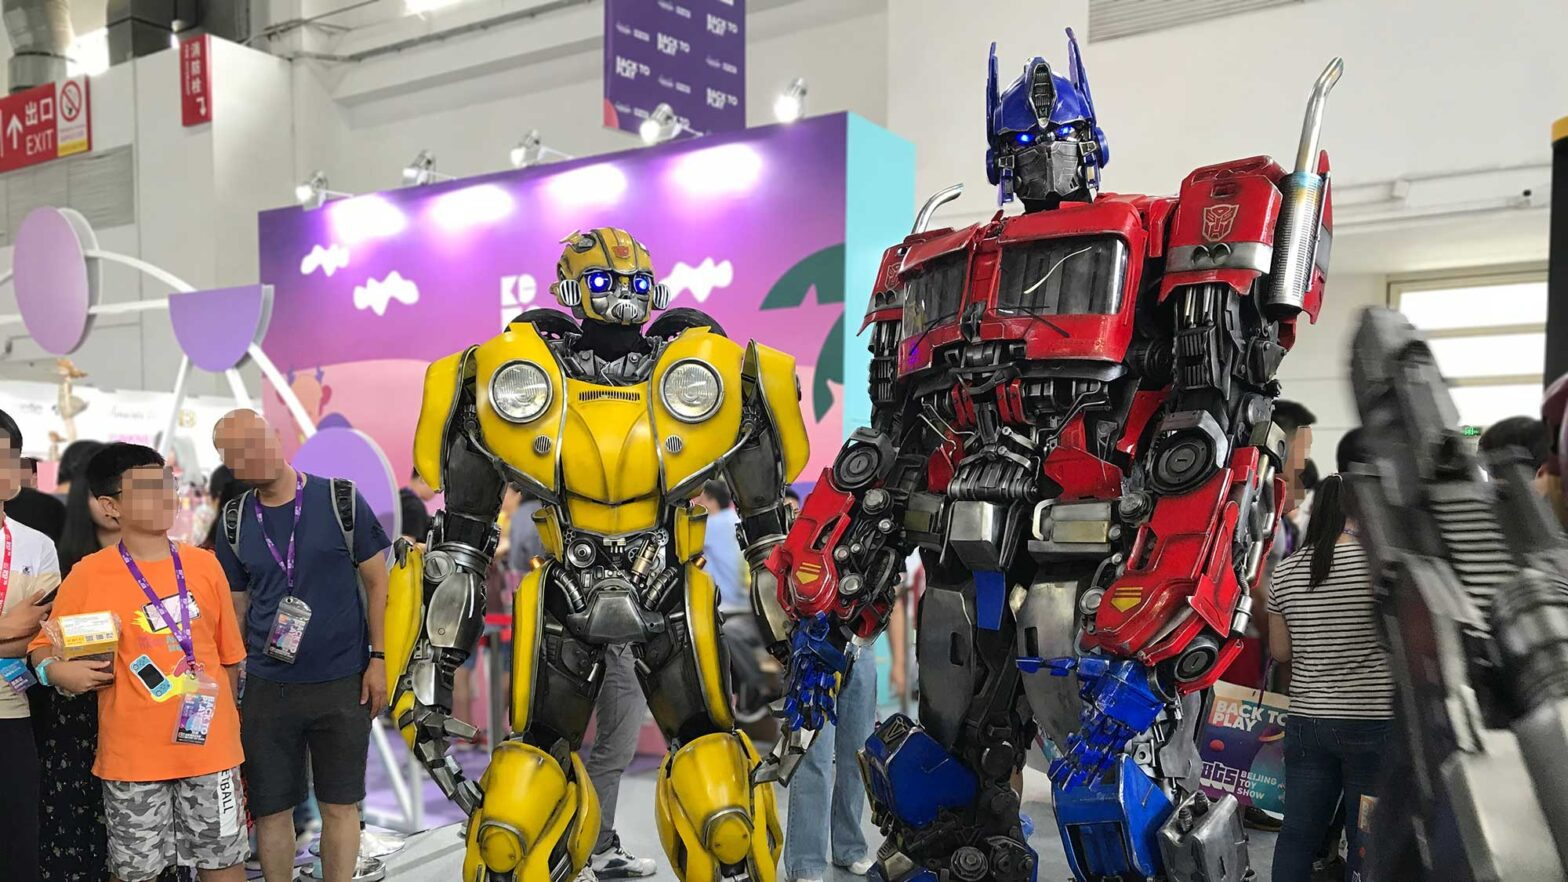 Killerbody Transformers Cosplay Costumes